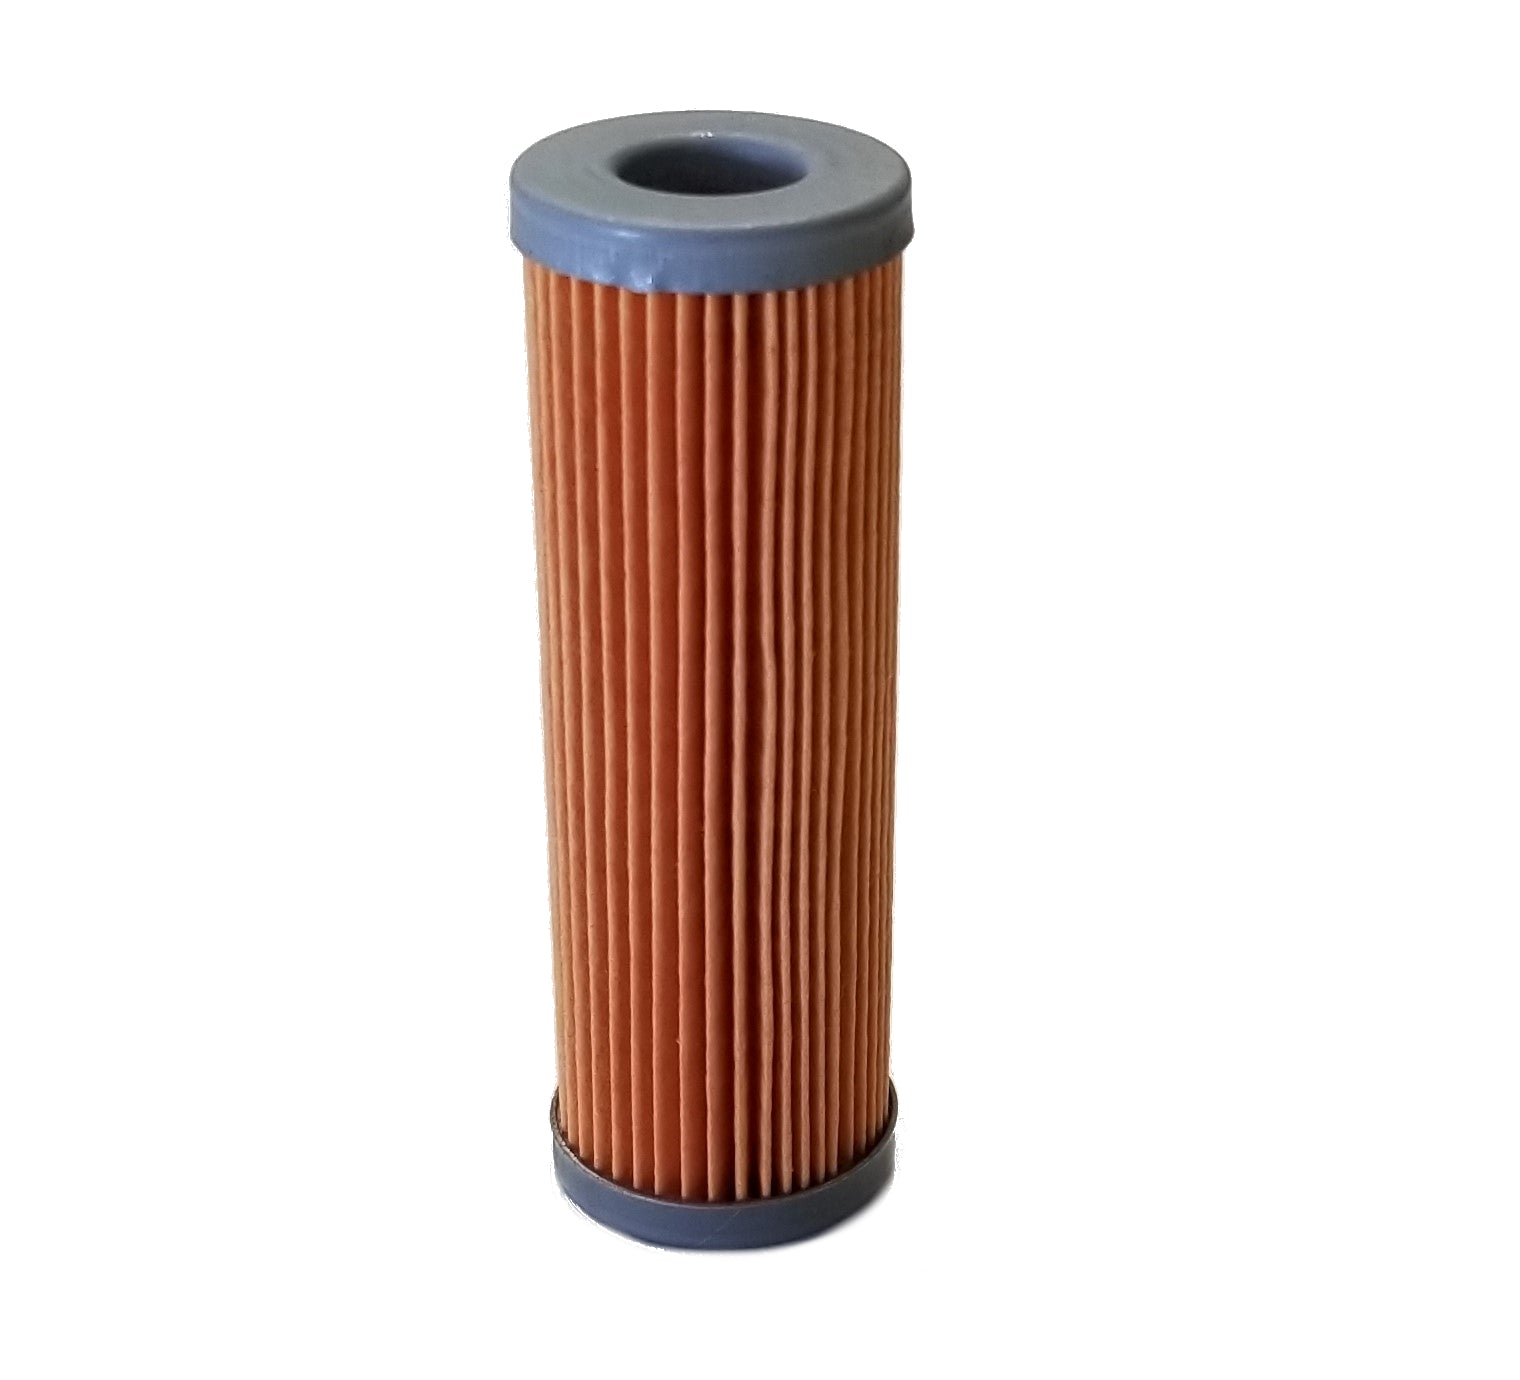 Minneapolis Moline Tractor Diesel Fuel Filter 10A3366